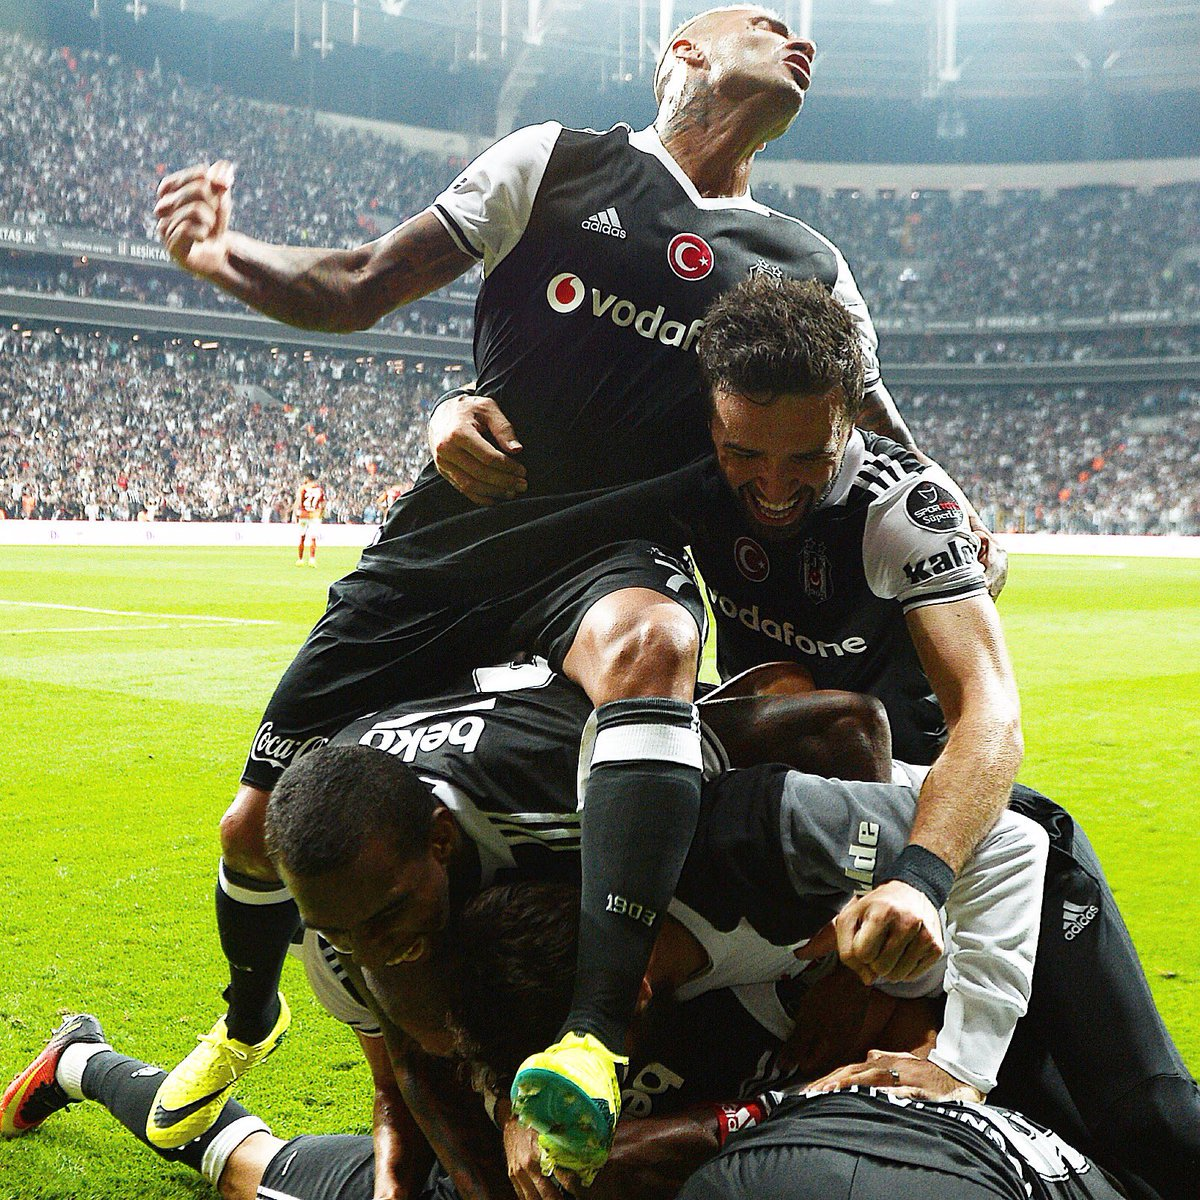 Tomorrow is going to be a big and exciting day for #Beşiktaş! <br>http://pic.twitter.com/CKXFUDYKsK